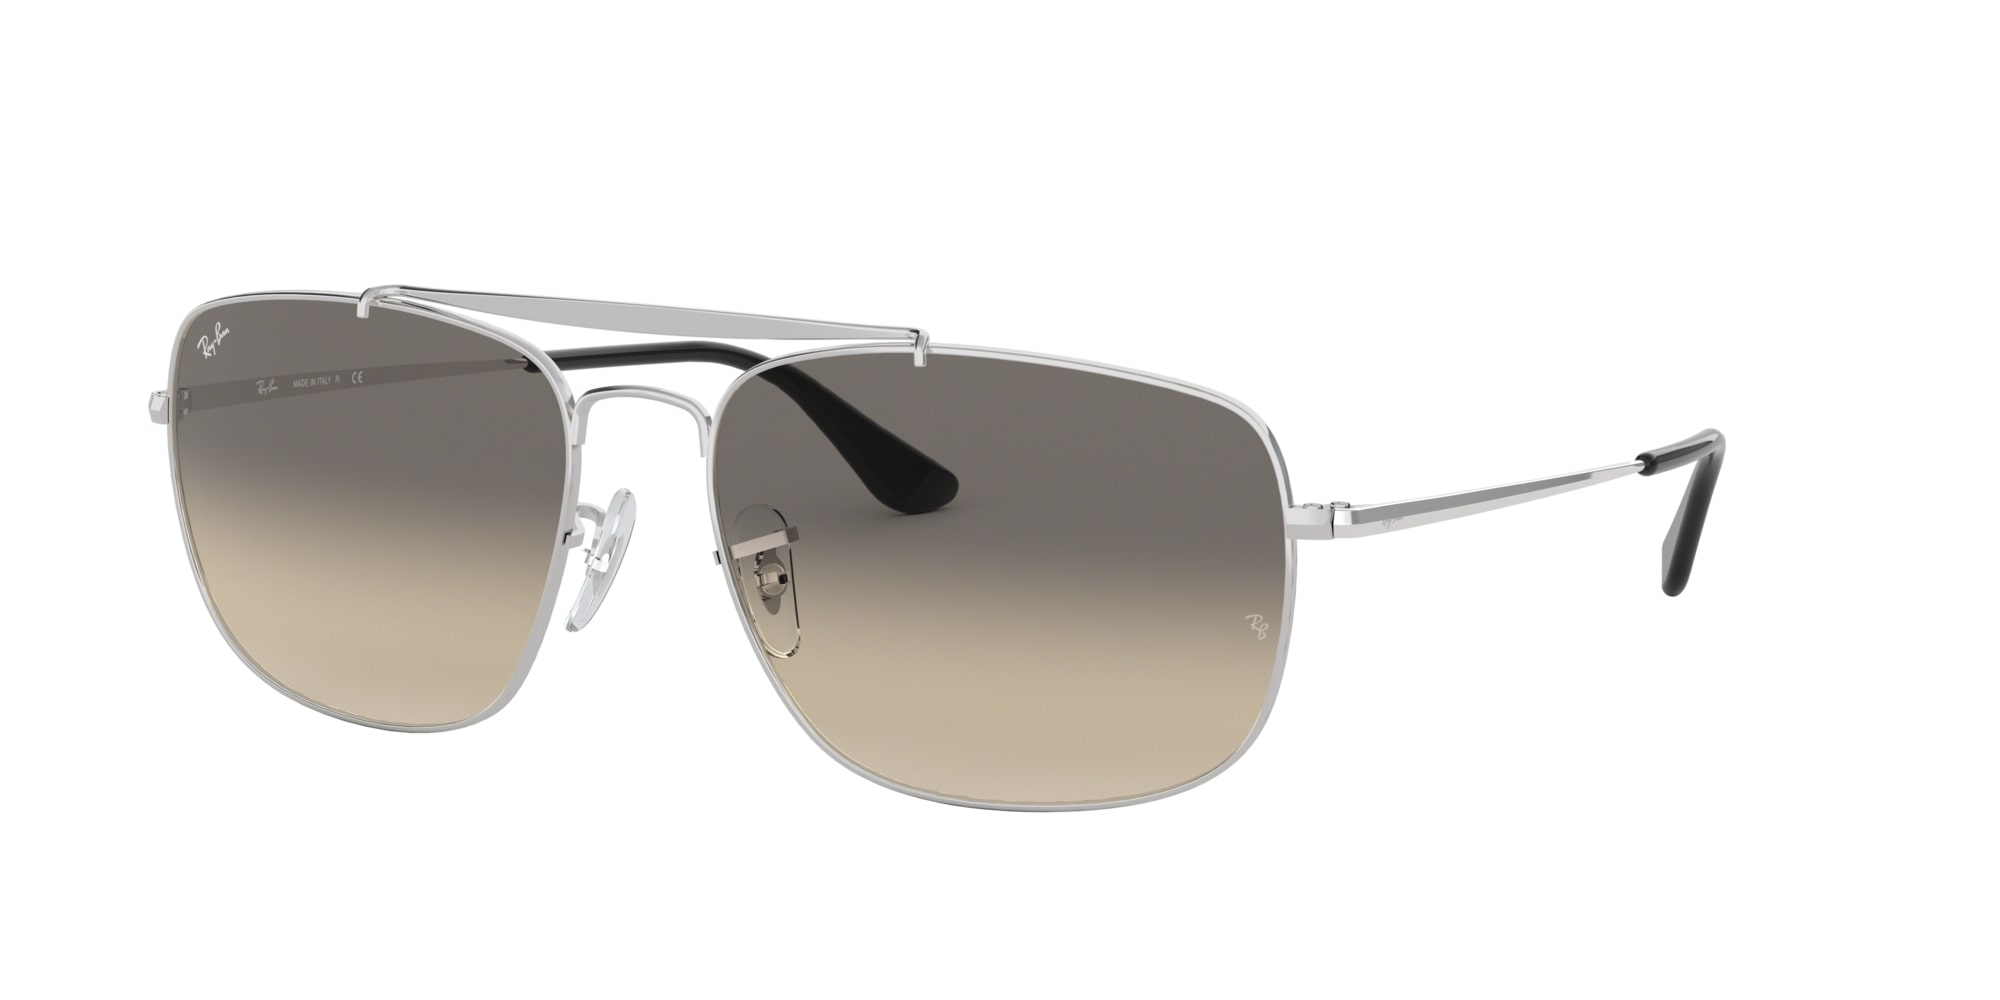 Ray Ban Colonel solbriller